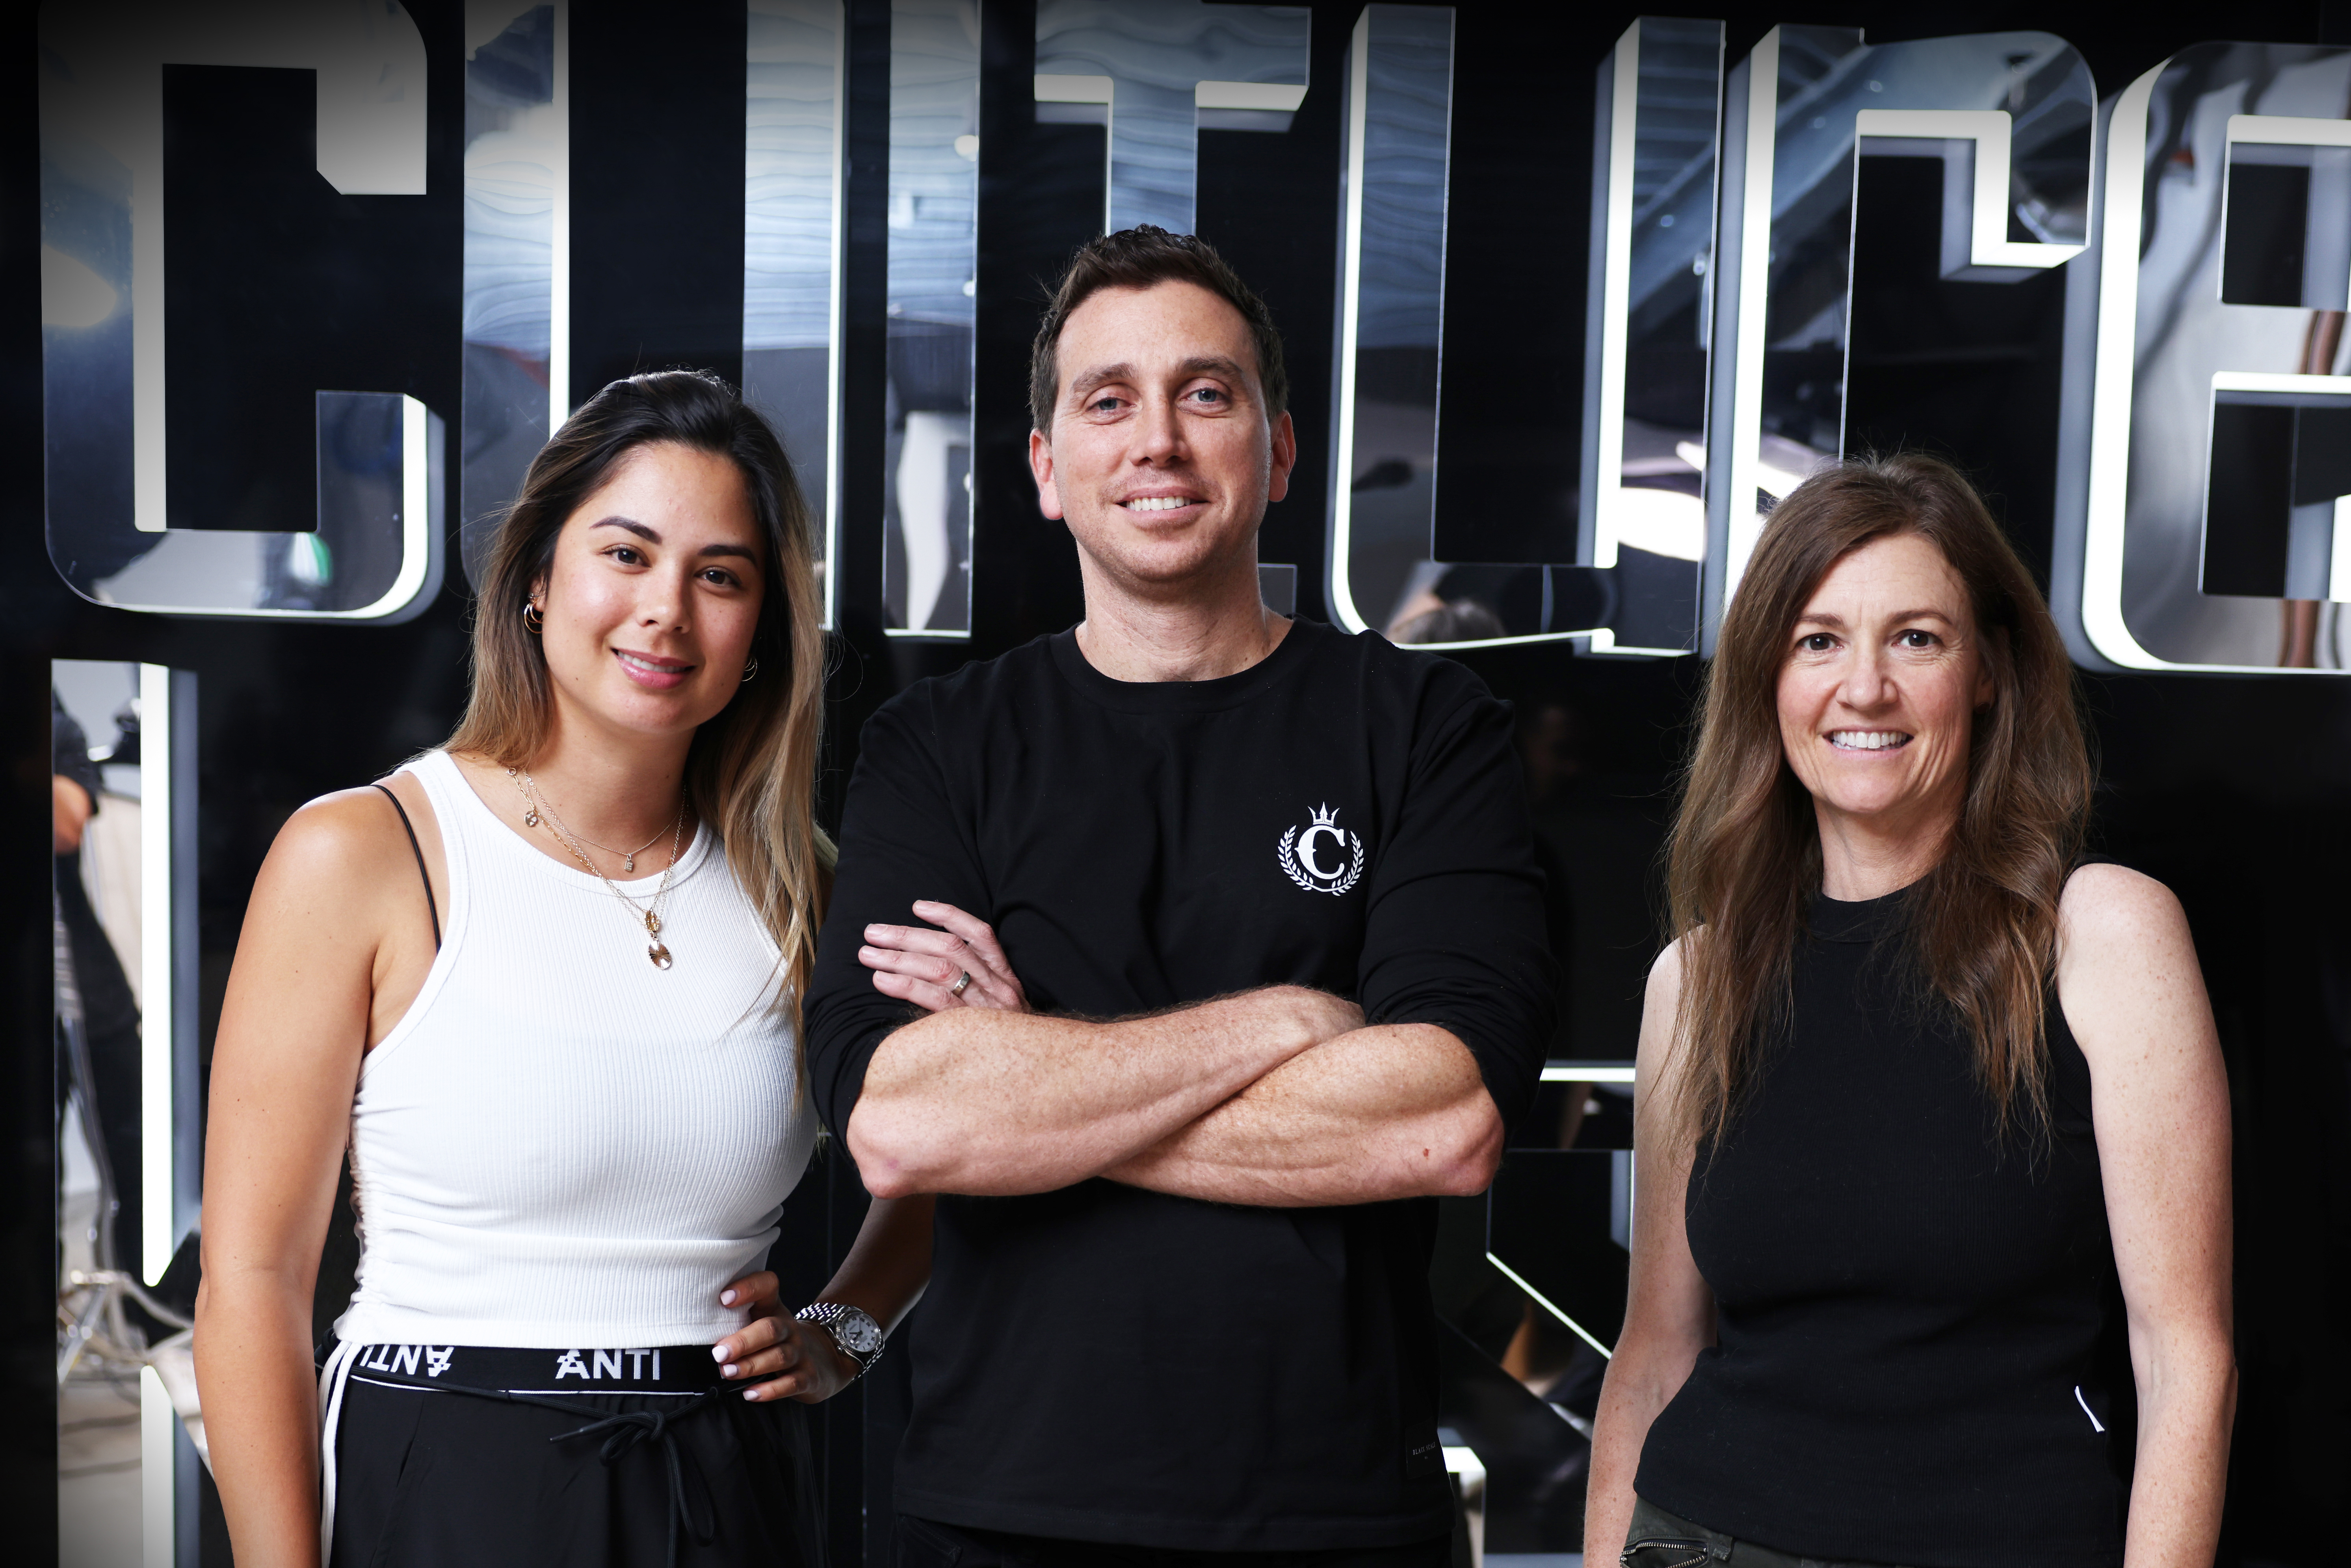 Culture Kings co-founders Tah-nee and Simon Beard with A.k.a. Brands CEO Jill Ramsey.